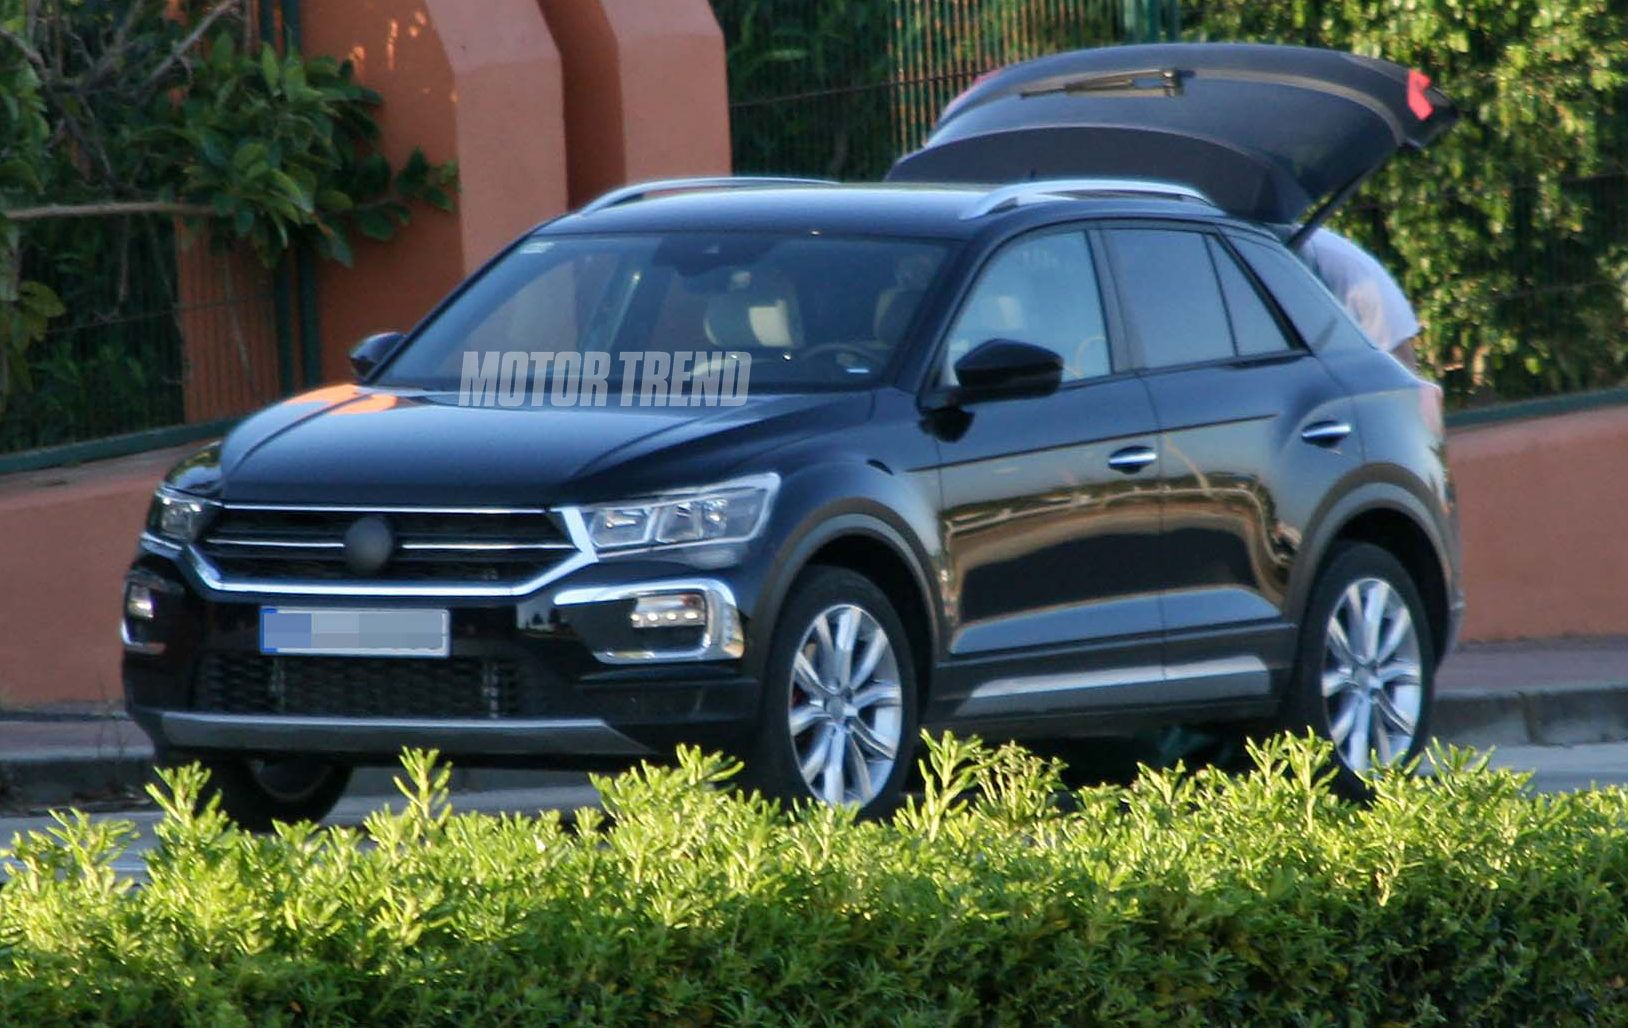 2018 volkswagen t roc first drive review motor trend http www